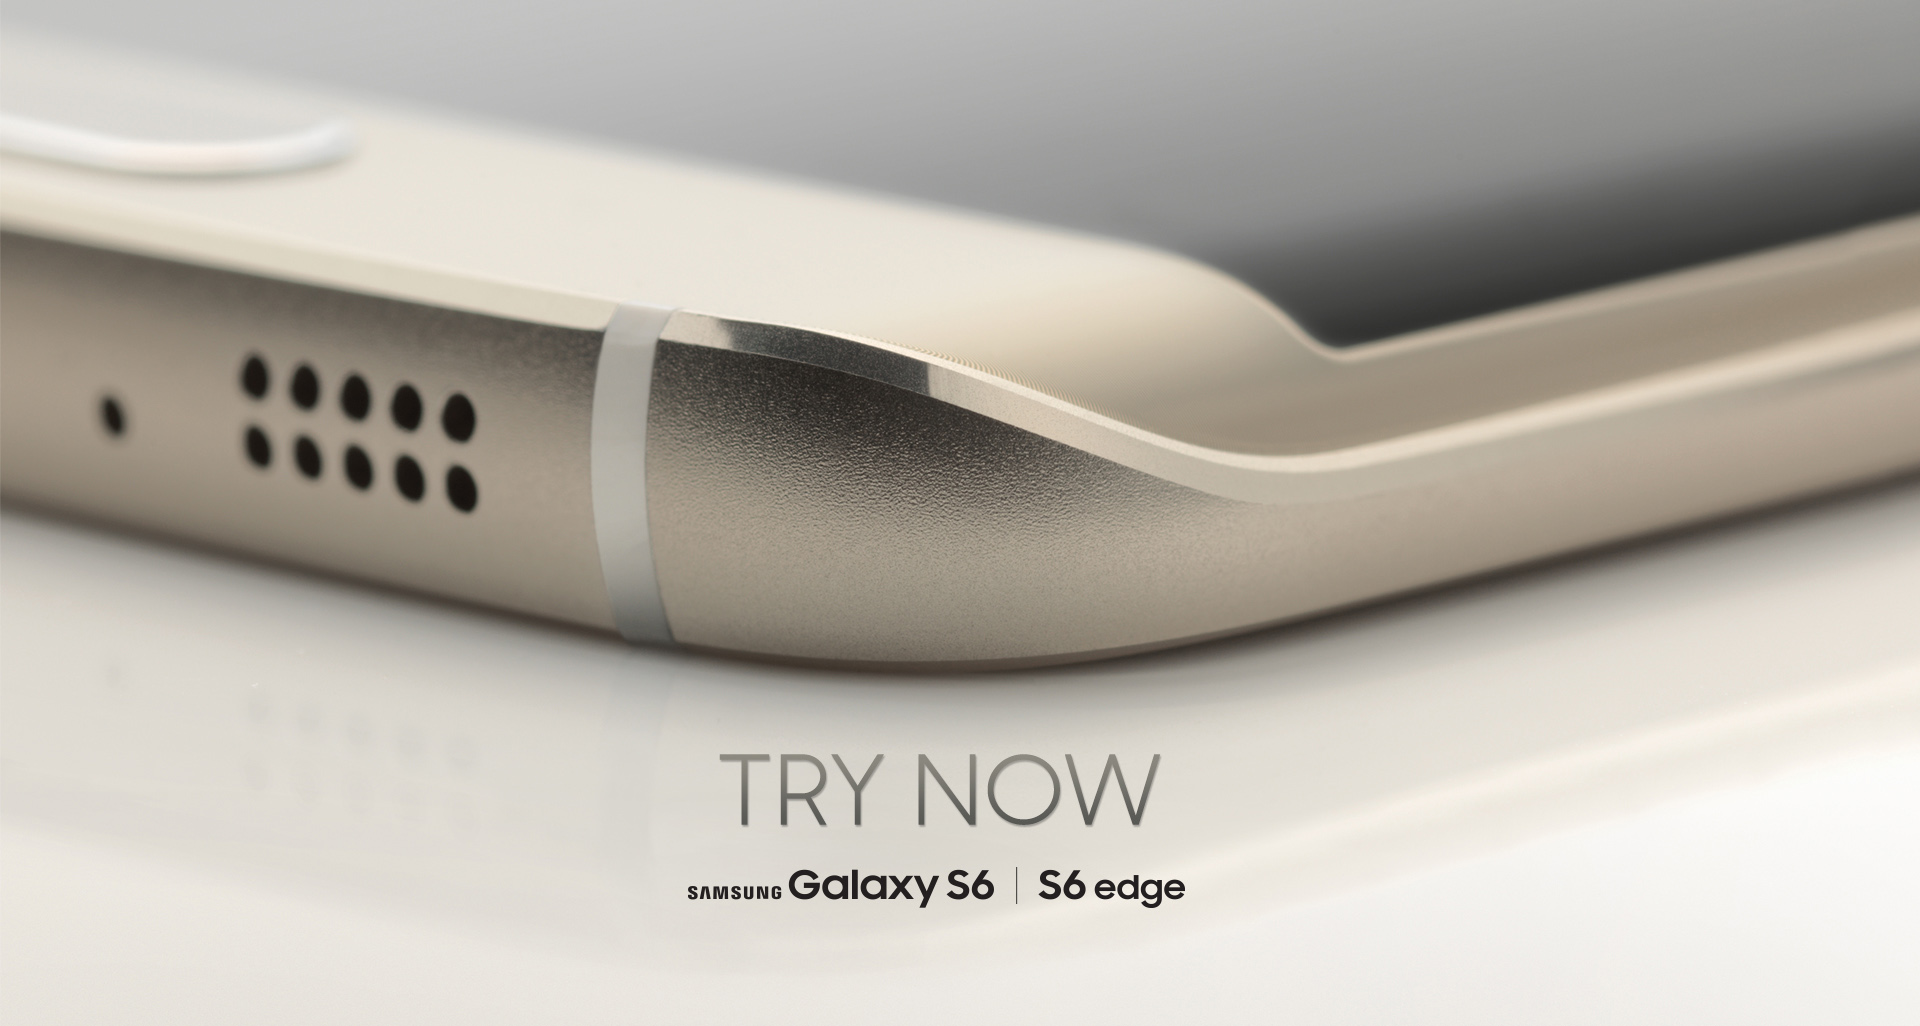 Samsung Galaxy S6 Try Now (2)